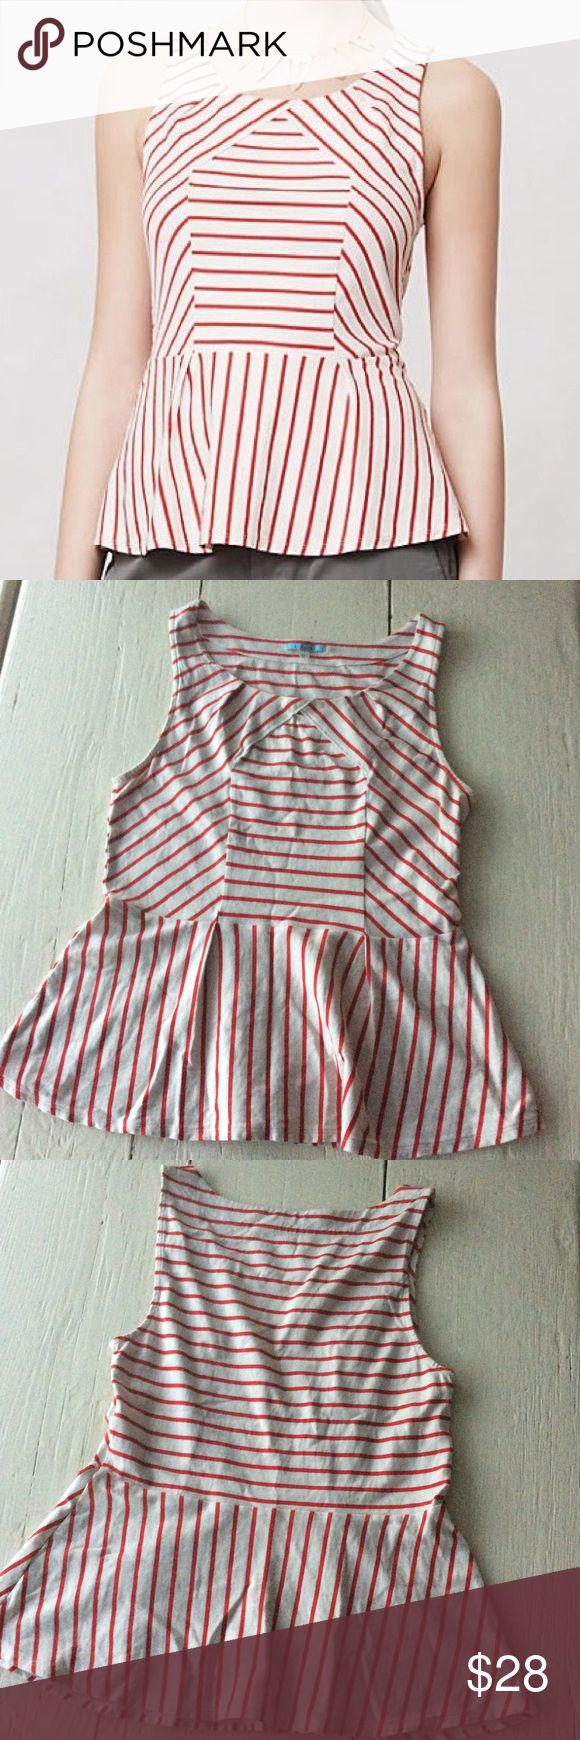 Anthro Peplum Top T-shirt material peplum top with red stripes. Leifnotes brand sold by Anthropologie.  >Condition: Very good  🚫 No Trades ✅ Discounted Bundles ✅ Reasonable Offers Anthropologie Tops Tank Tops